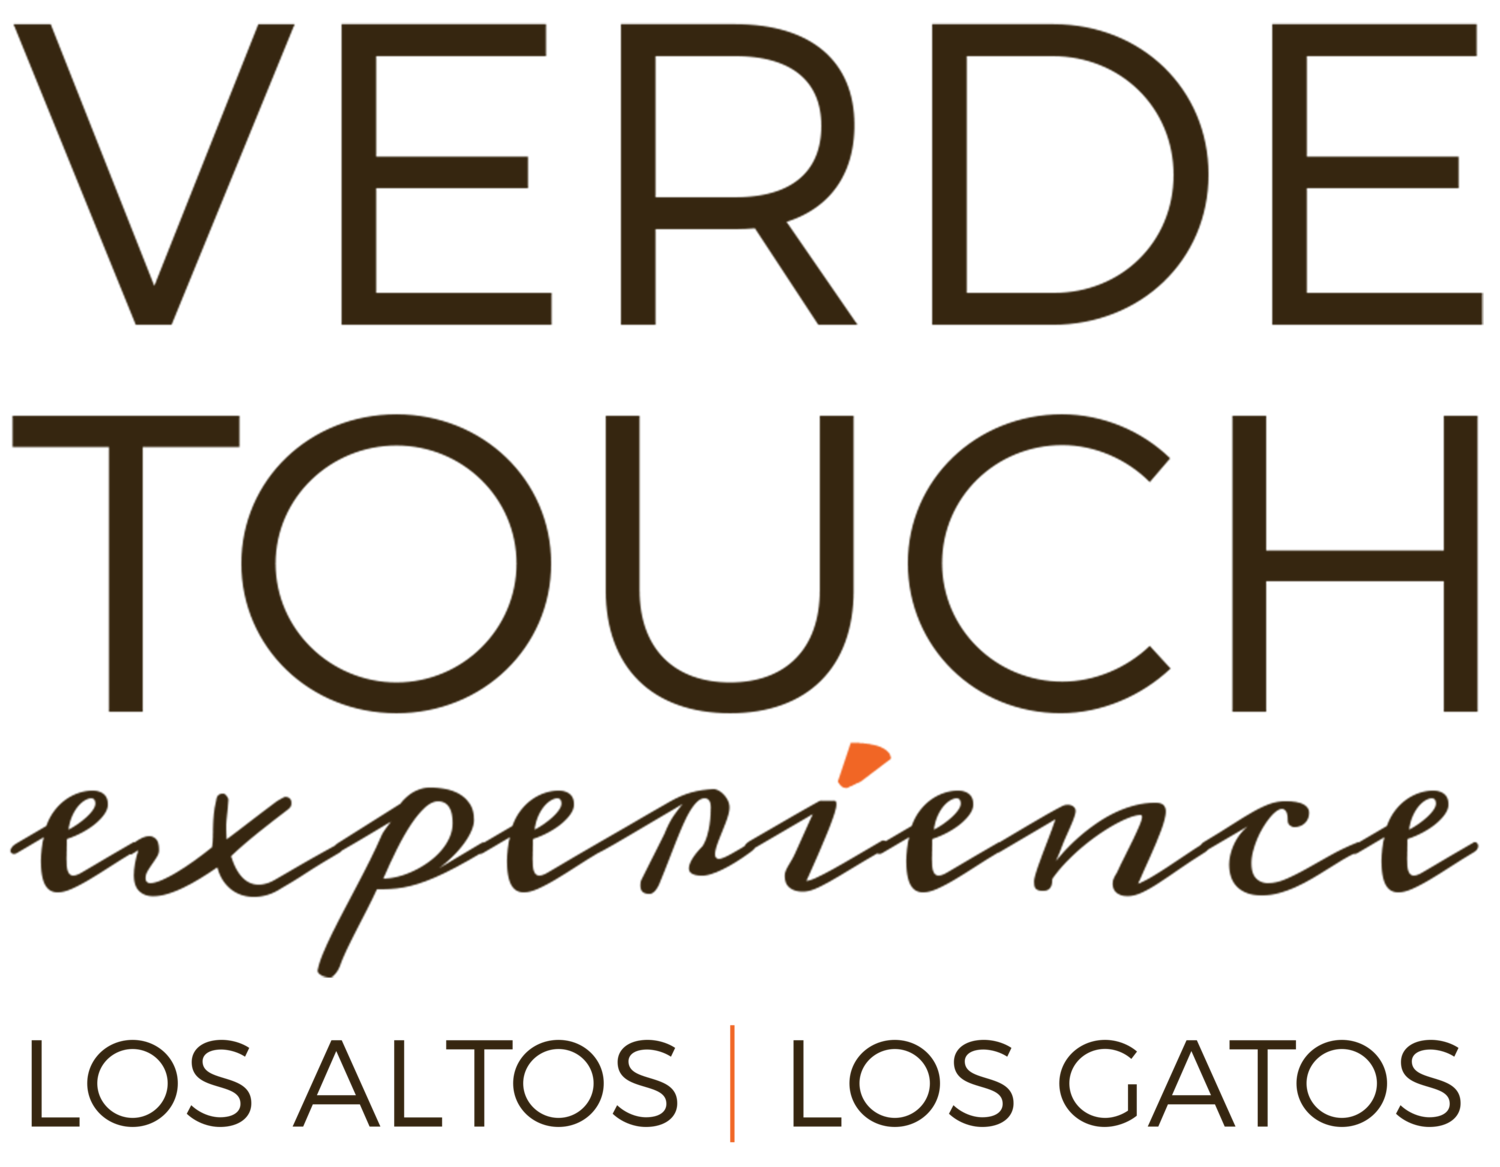 Verde Touch